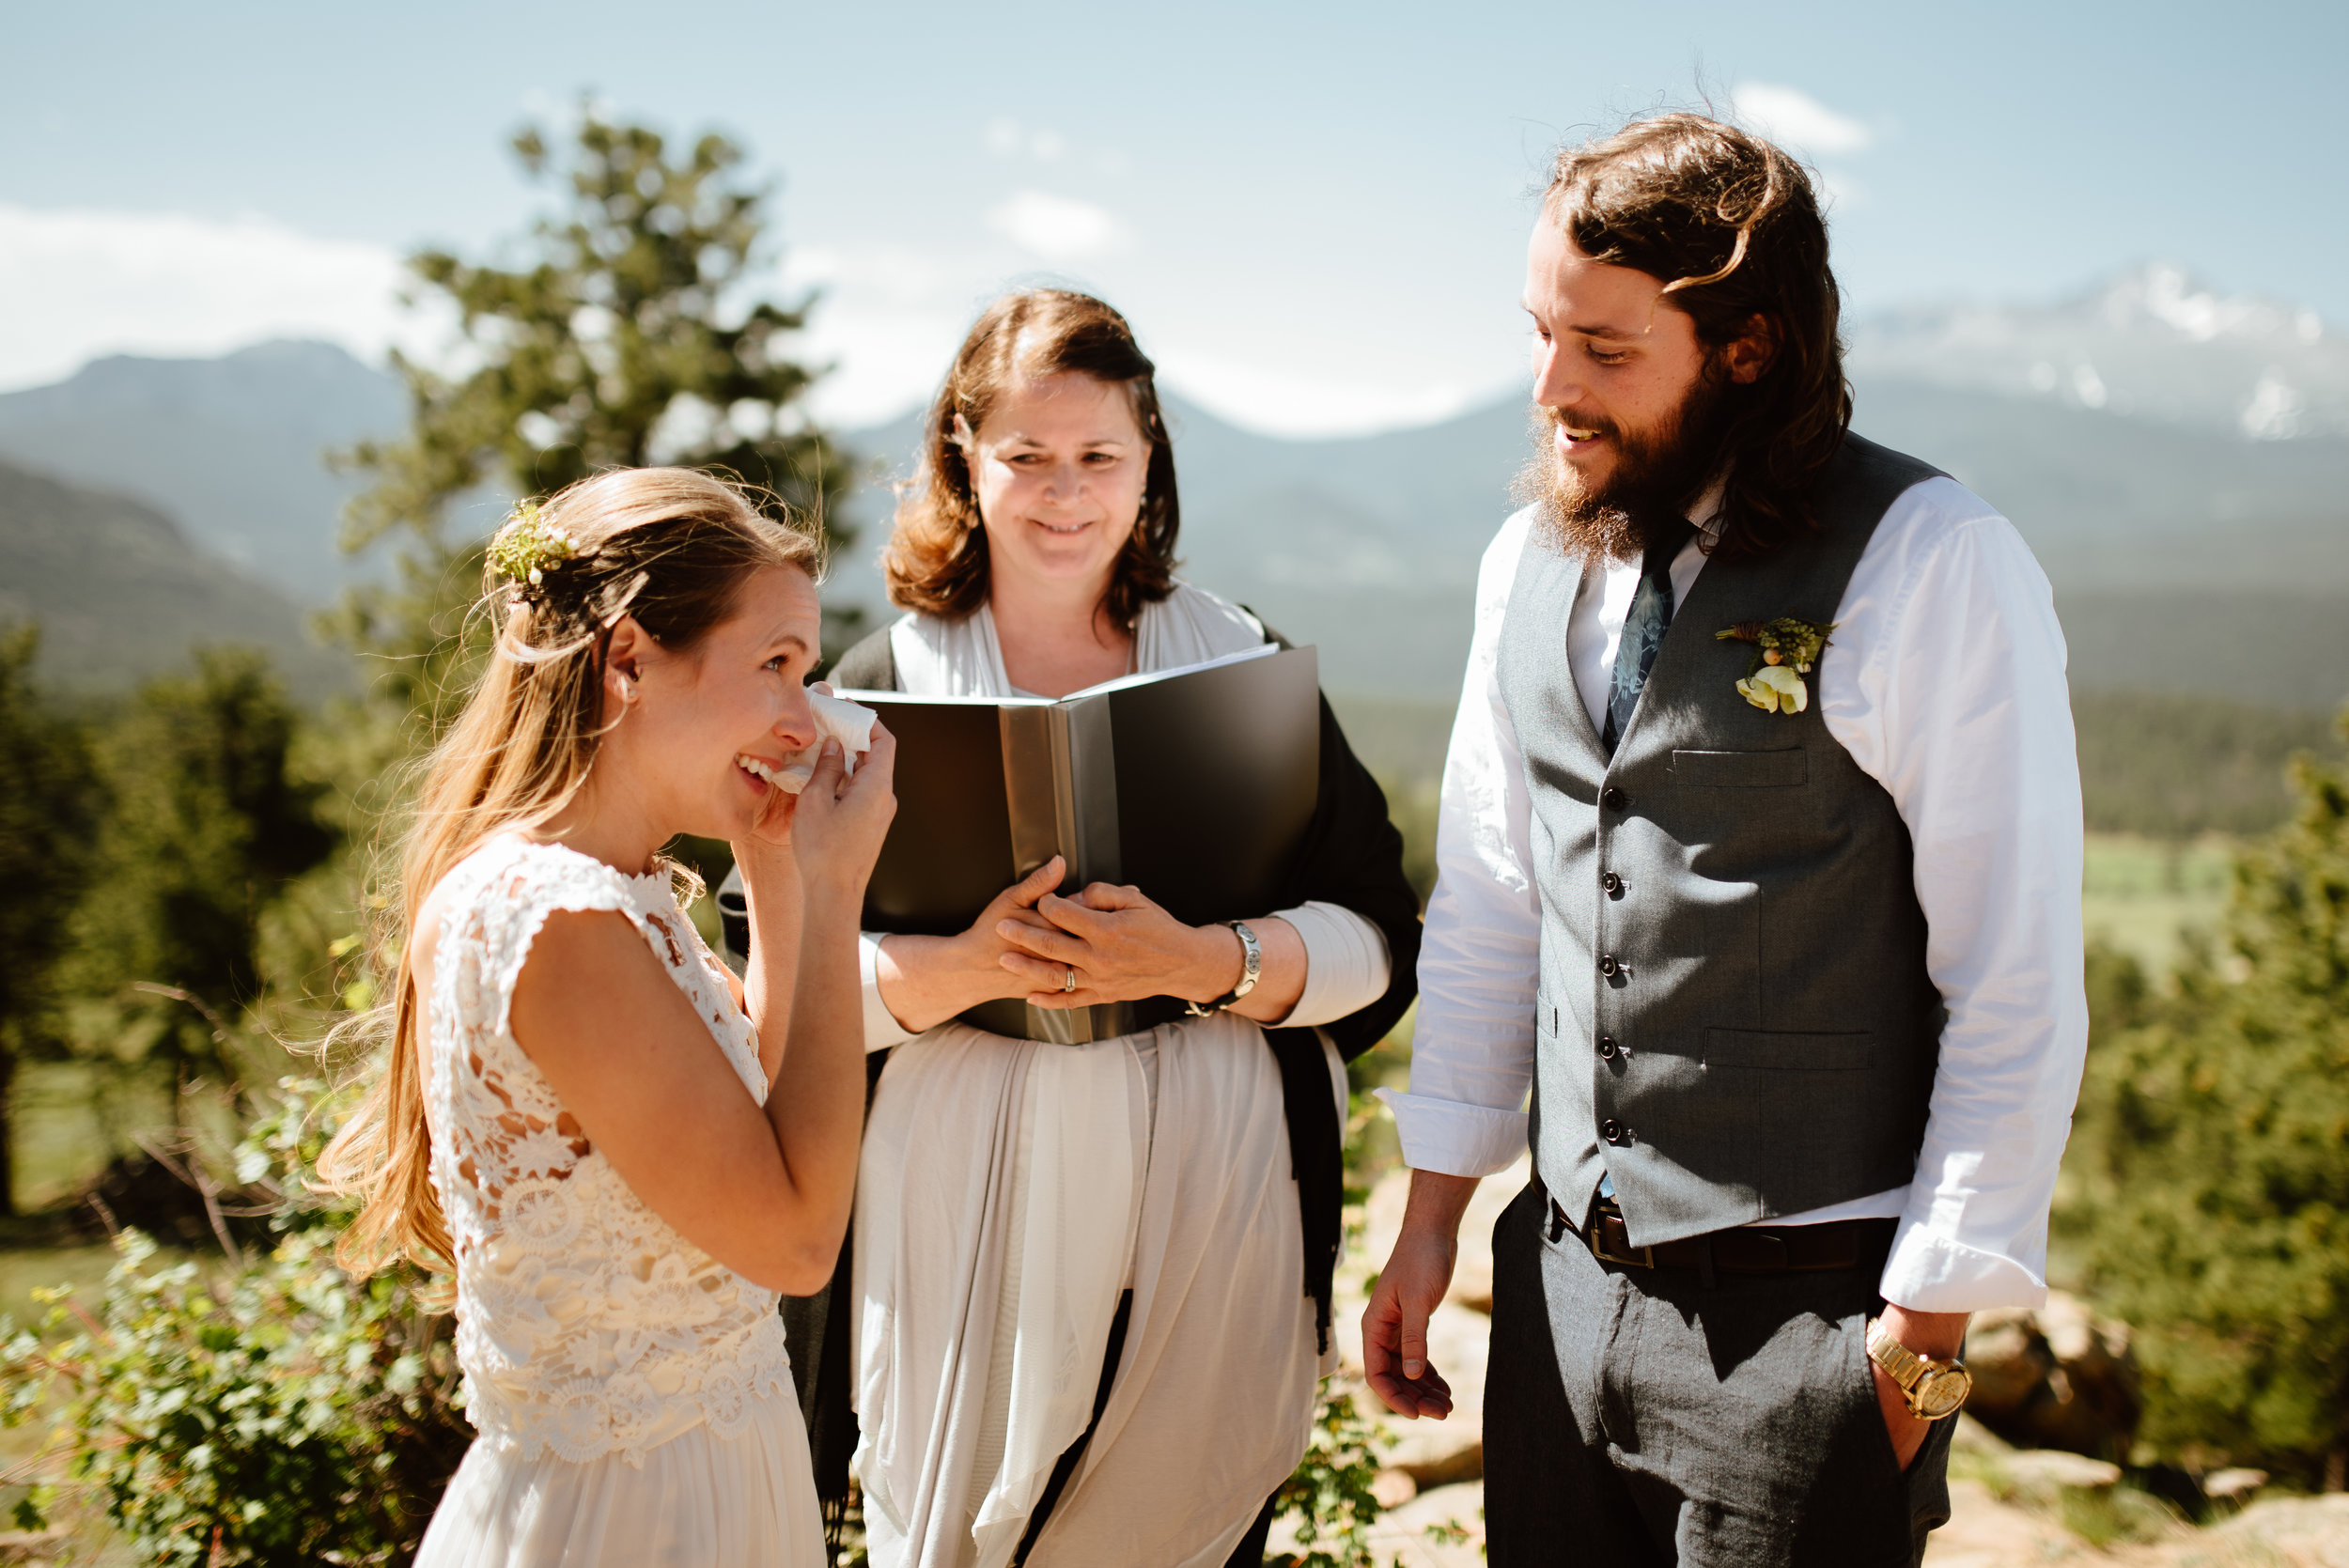 This is such a gorgeous wedding ceremony at 3m curve in RMNP! SO happy for this couple! | This Rocky Mountain National Park wedding location of 3m curve elopement photos by Colorado wedding photographer, Maddie Mae.